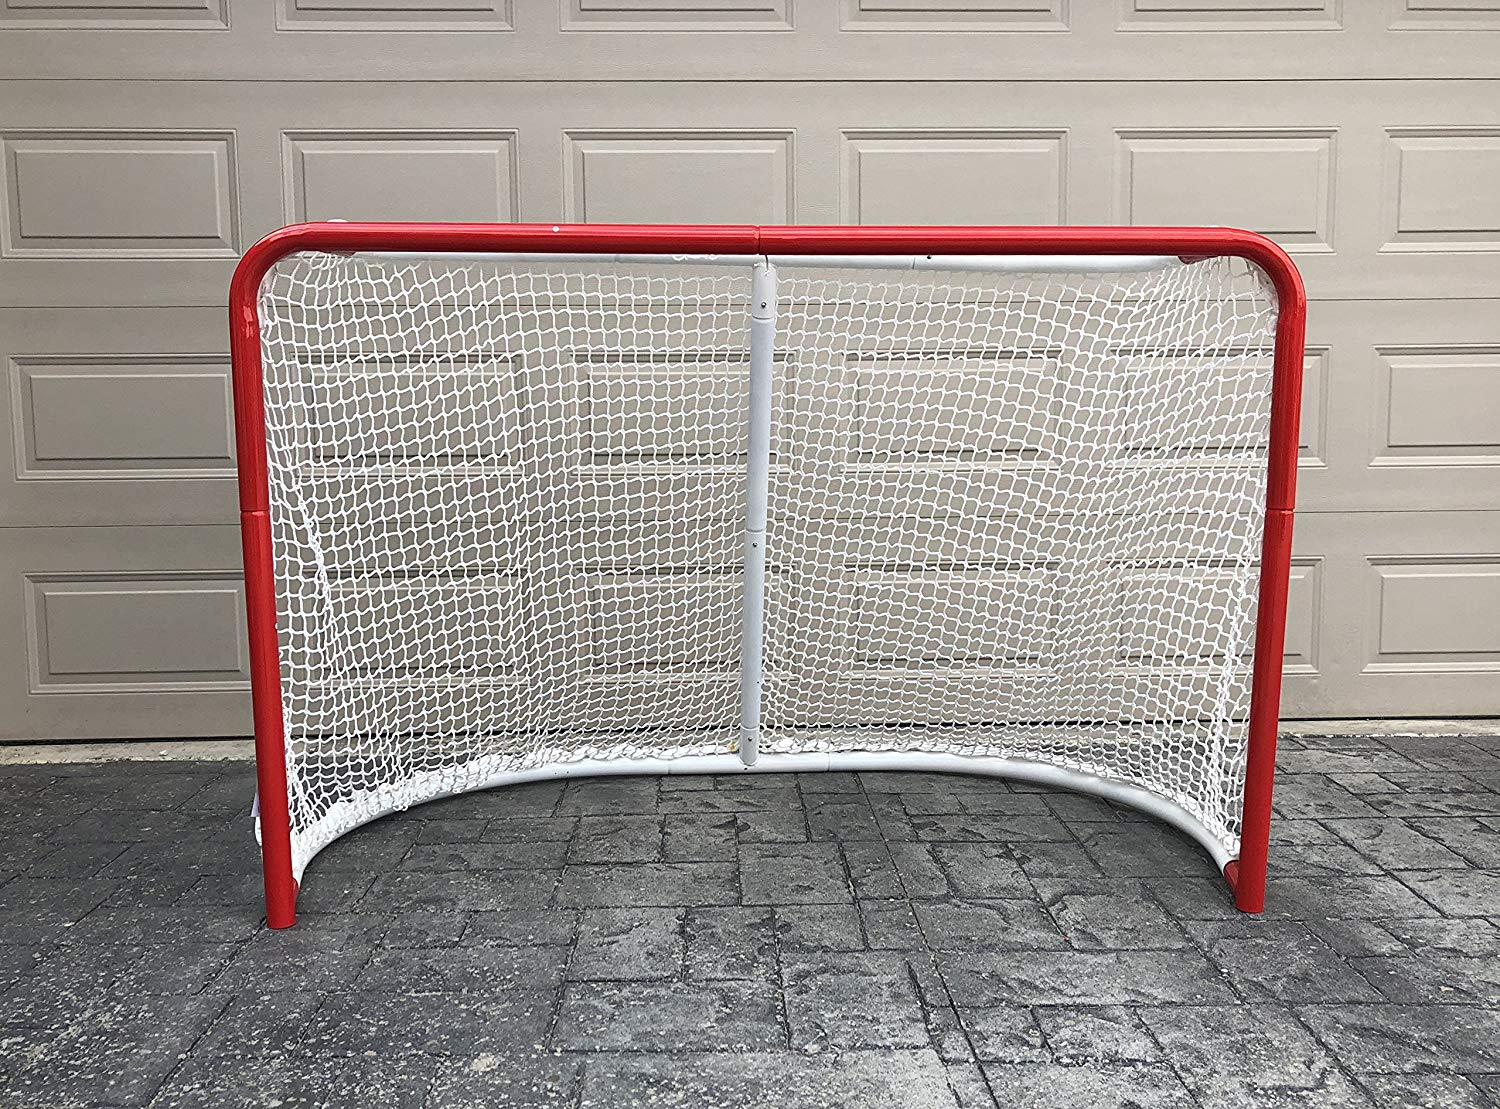 d3cb66b8494 Get Quotations · Ascent Sports Hockey Goal - Pro Style Hockey Goal -  Practice Goal - Hockey Net -